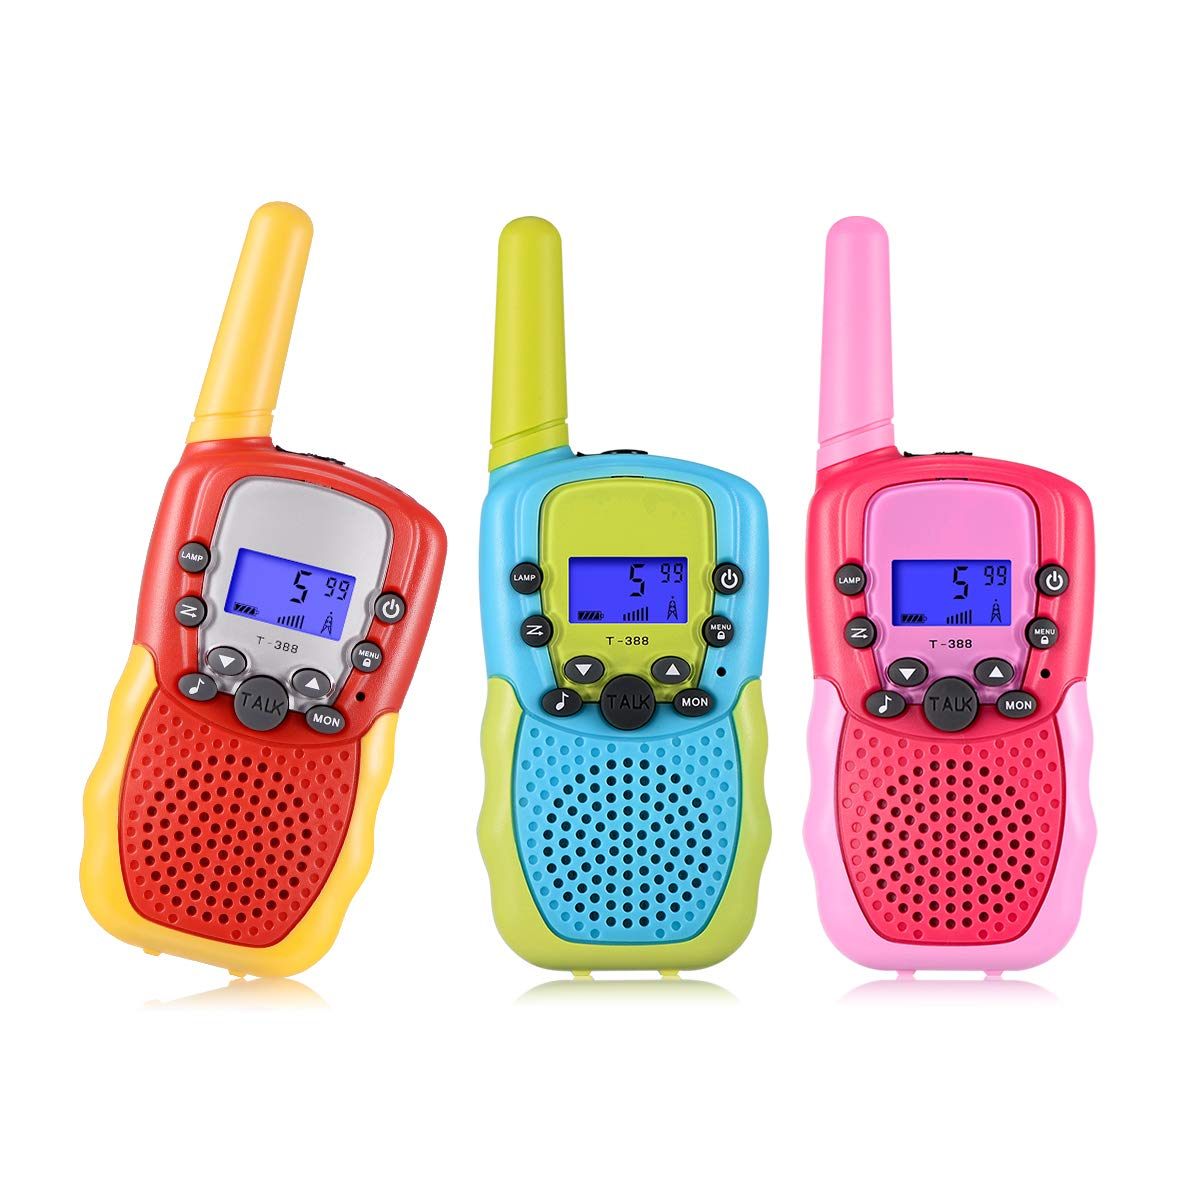 SnowCinda 3 Pack Walkie Talkies for Kids , 22 Channels 2 Way Radio Toy with Backlit LCD Flashlight, 3 Miles Range for Outside Adventures, Camping, Hiking, Toys for 3-12 Years Old Boys or Girls